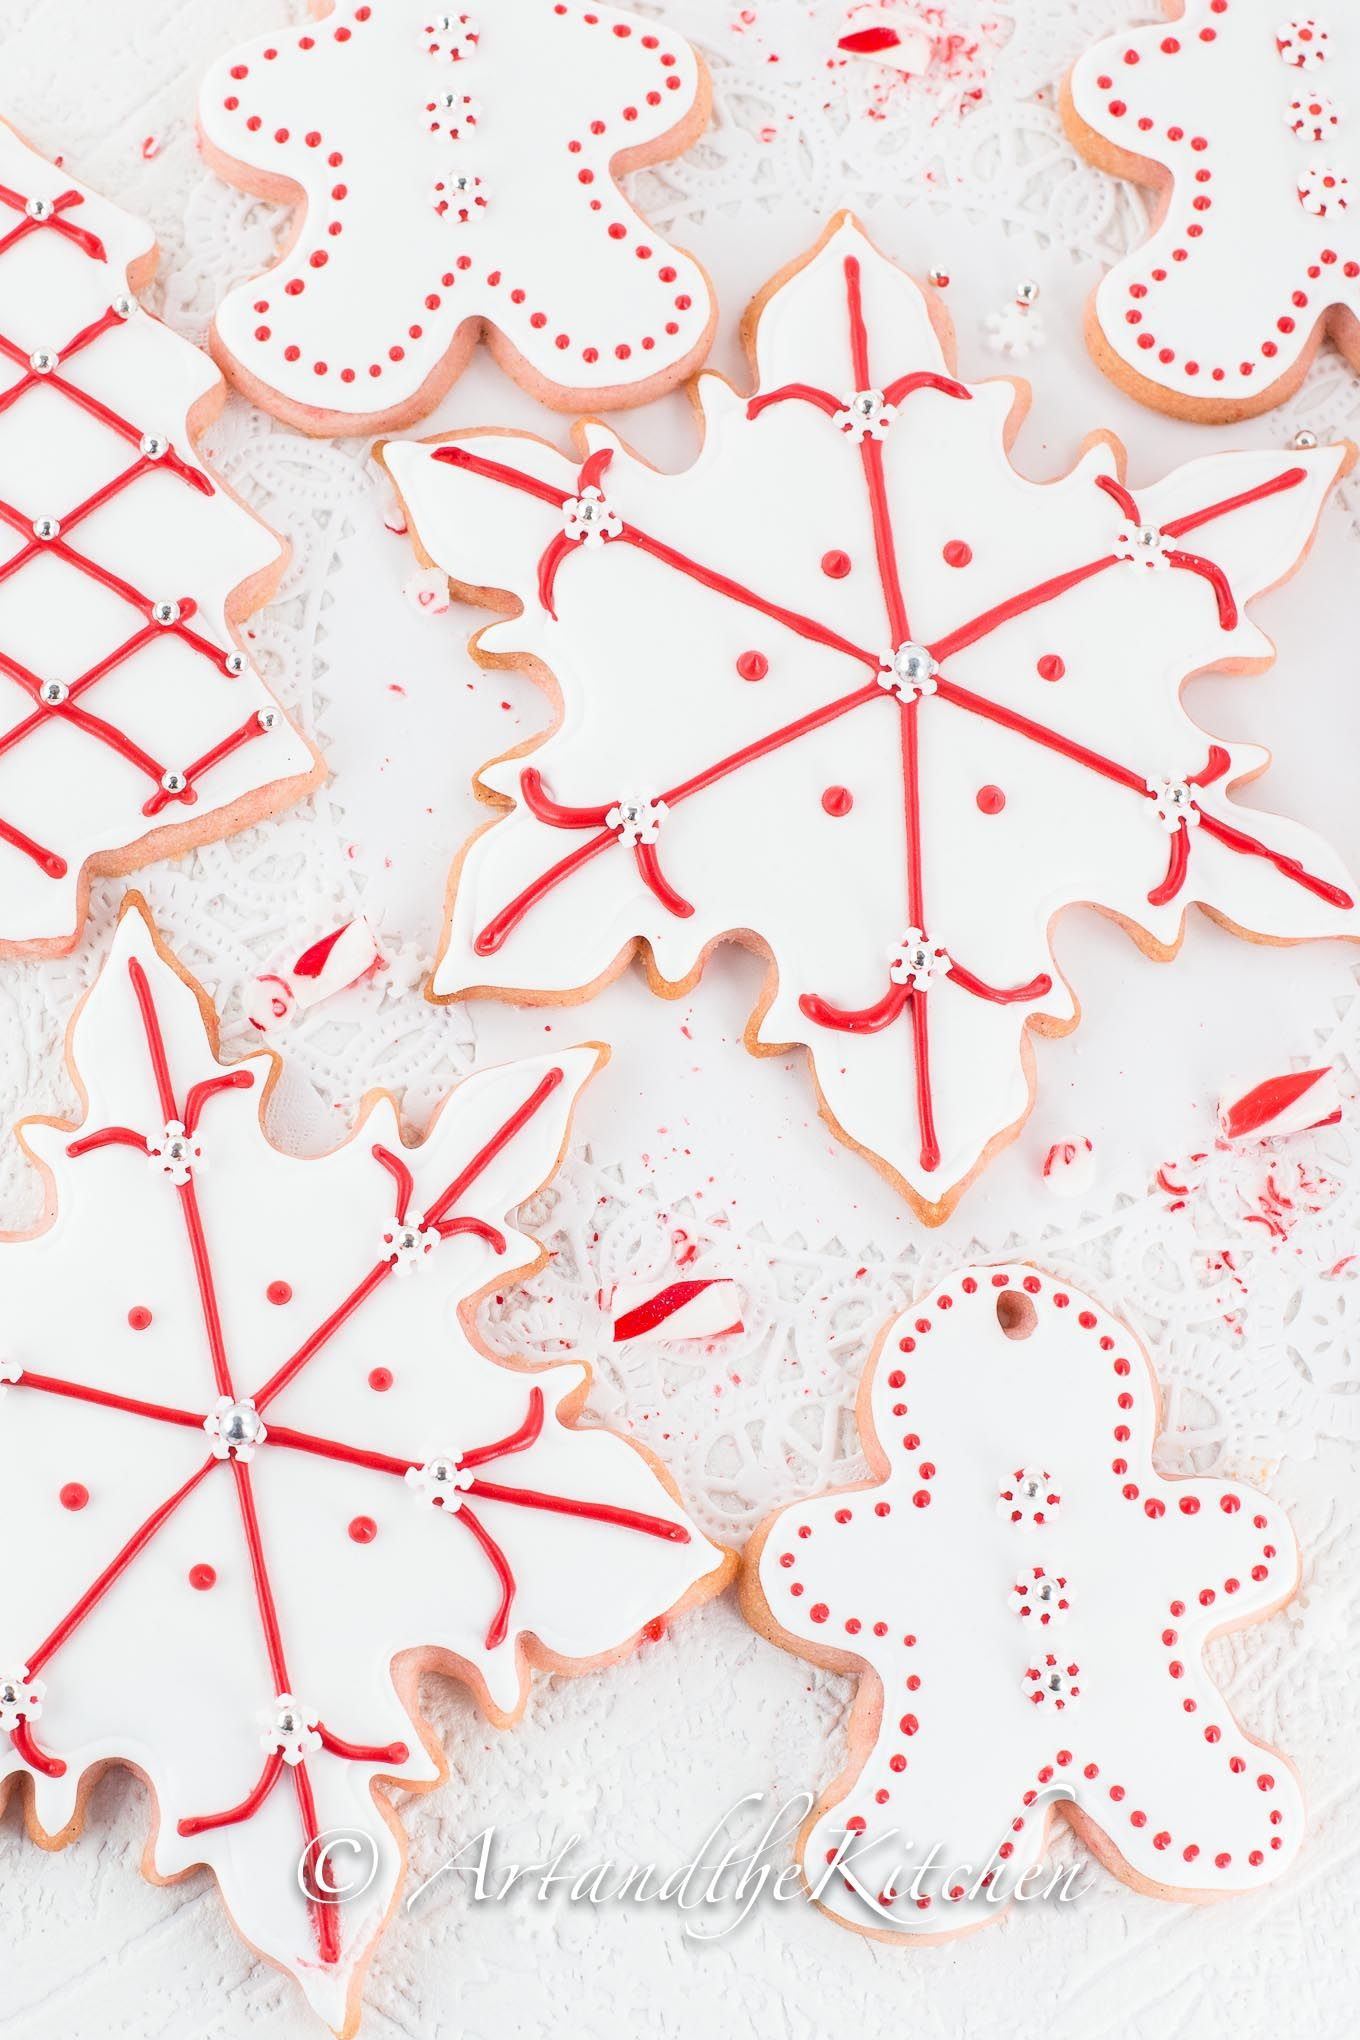 This recipe for scrumptious Candy Cane Sugar Cookies is the perfect recipe for making decorative cut out cookies. It is also incredibly delicious with great candy cane flavour!